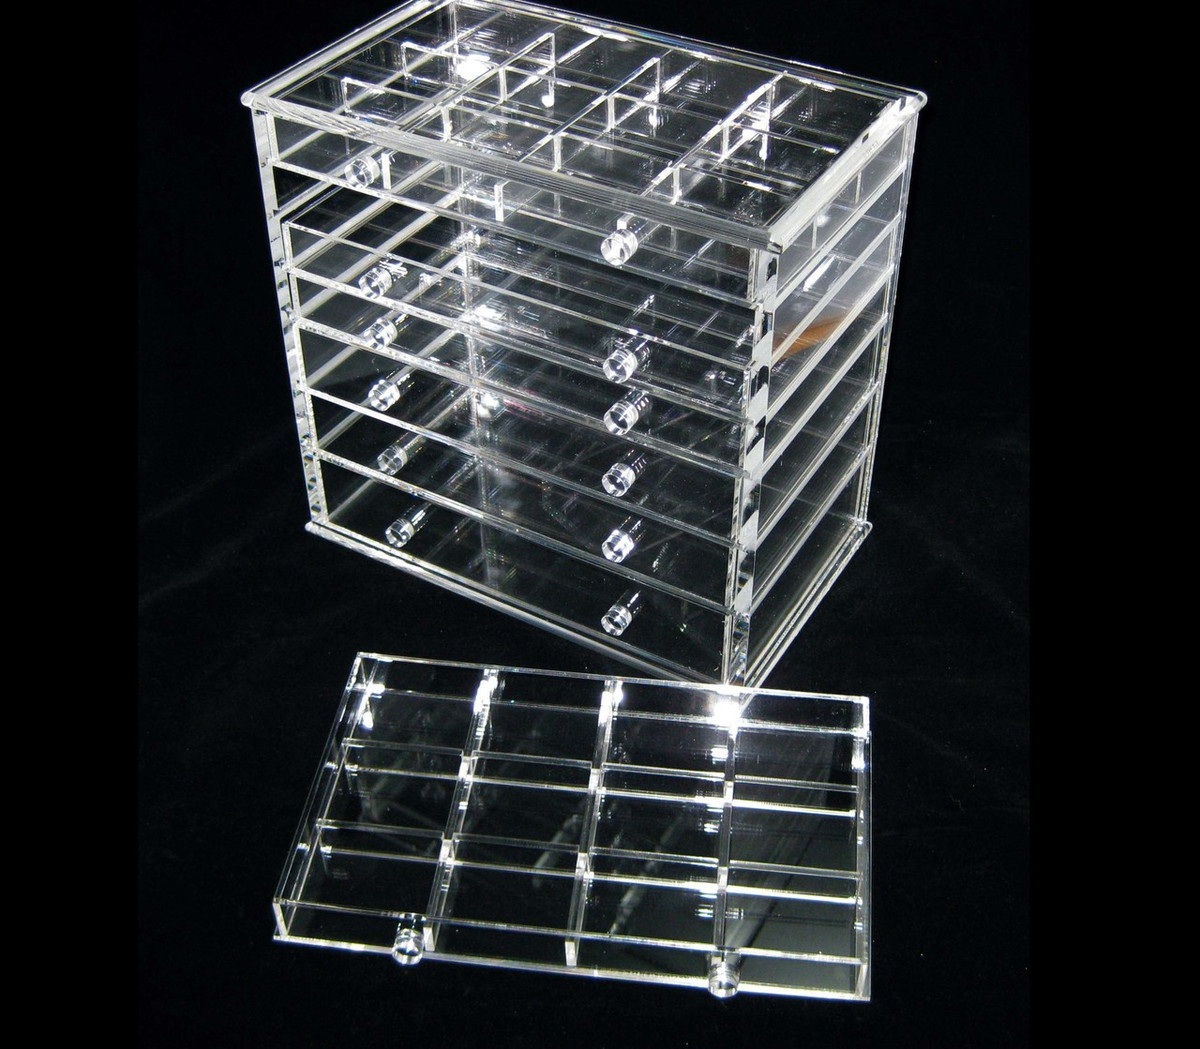 idea jewelry ideas organizer collection trays design drawer drawers home